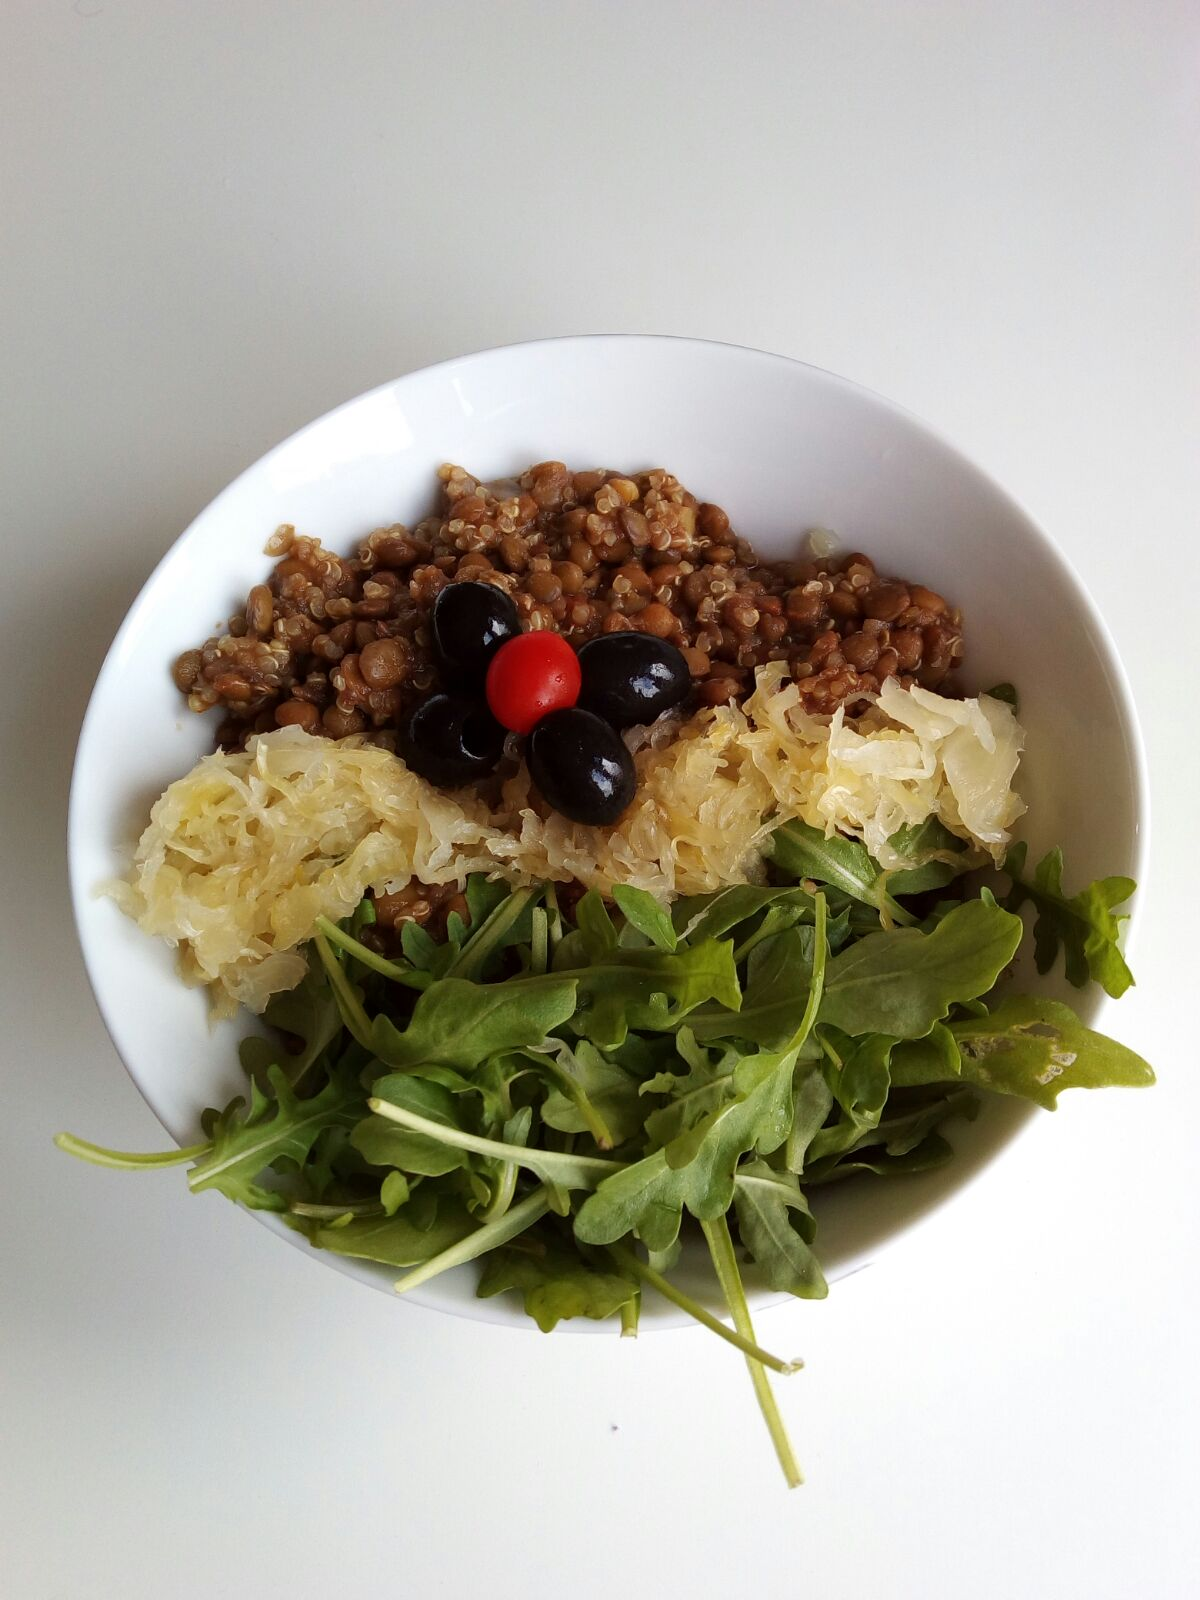 Lentils with sauerkraut and quinoa